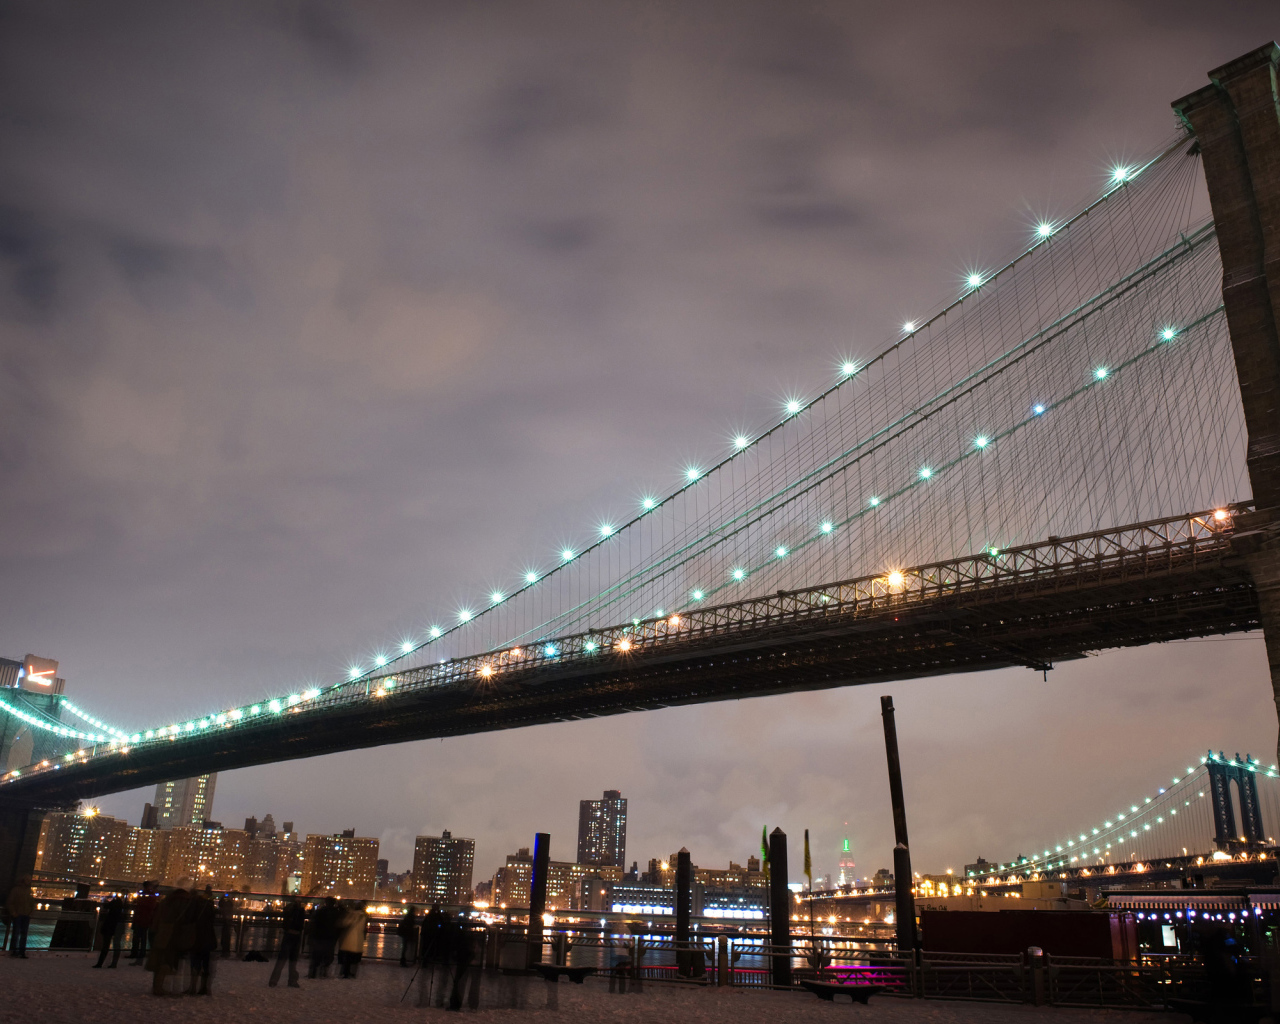 Brooklyn Best Quotes – 'I'd imagined a different life for myself.'